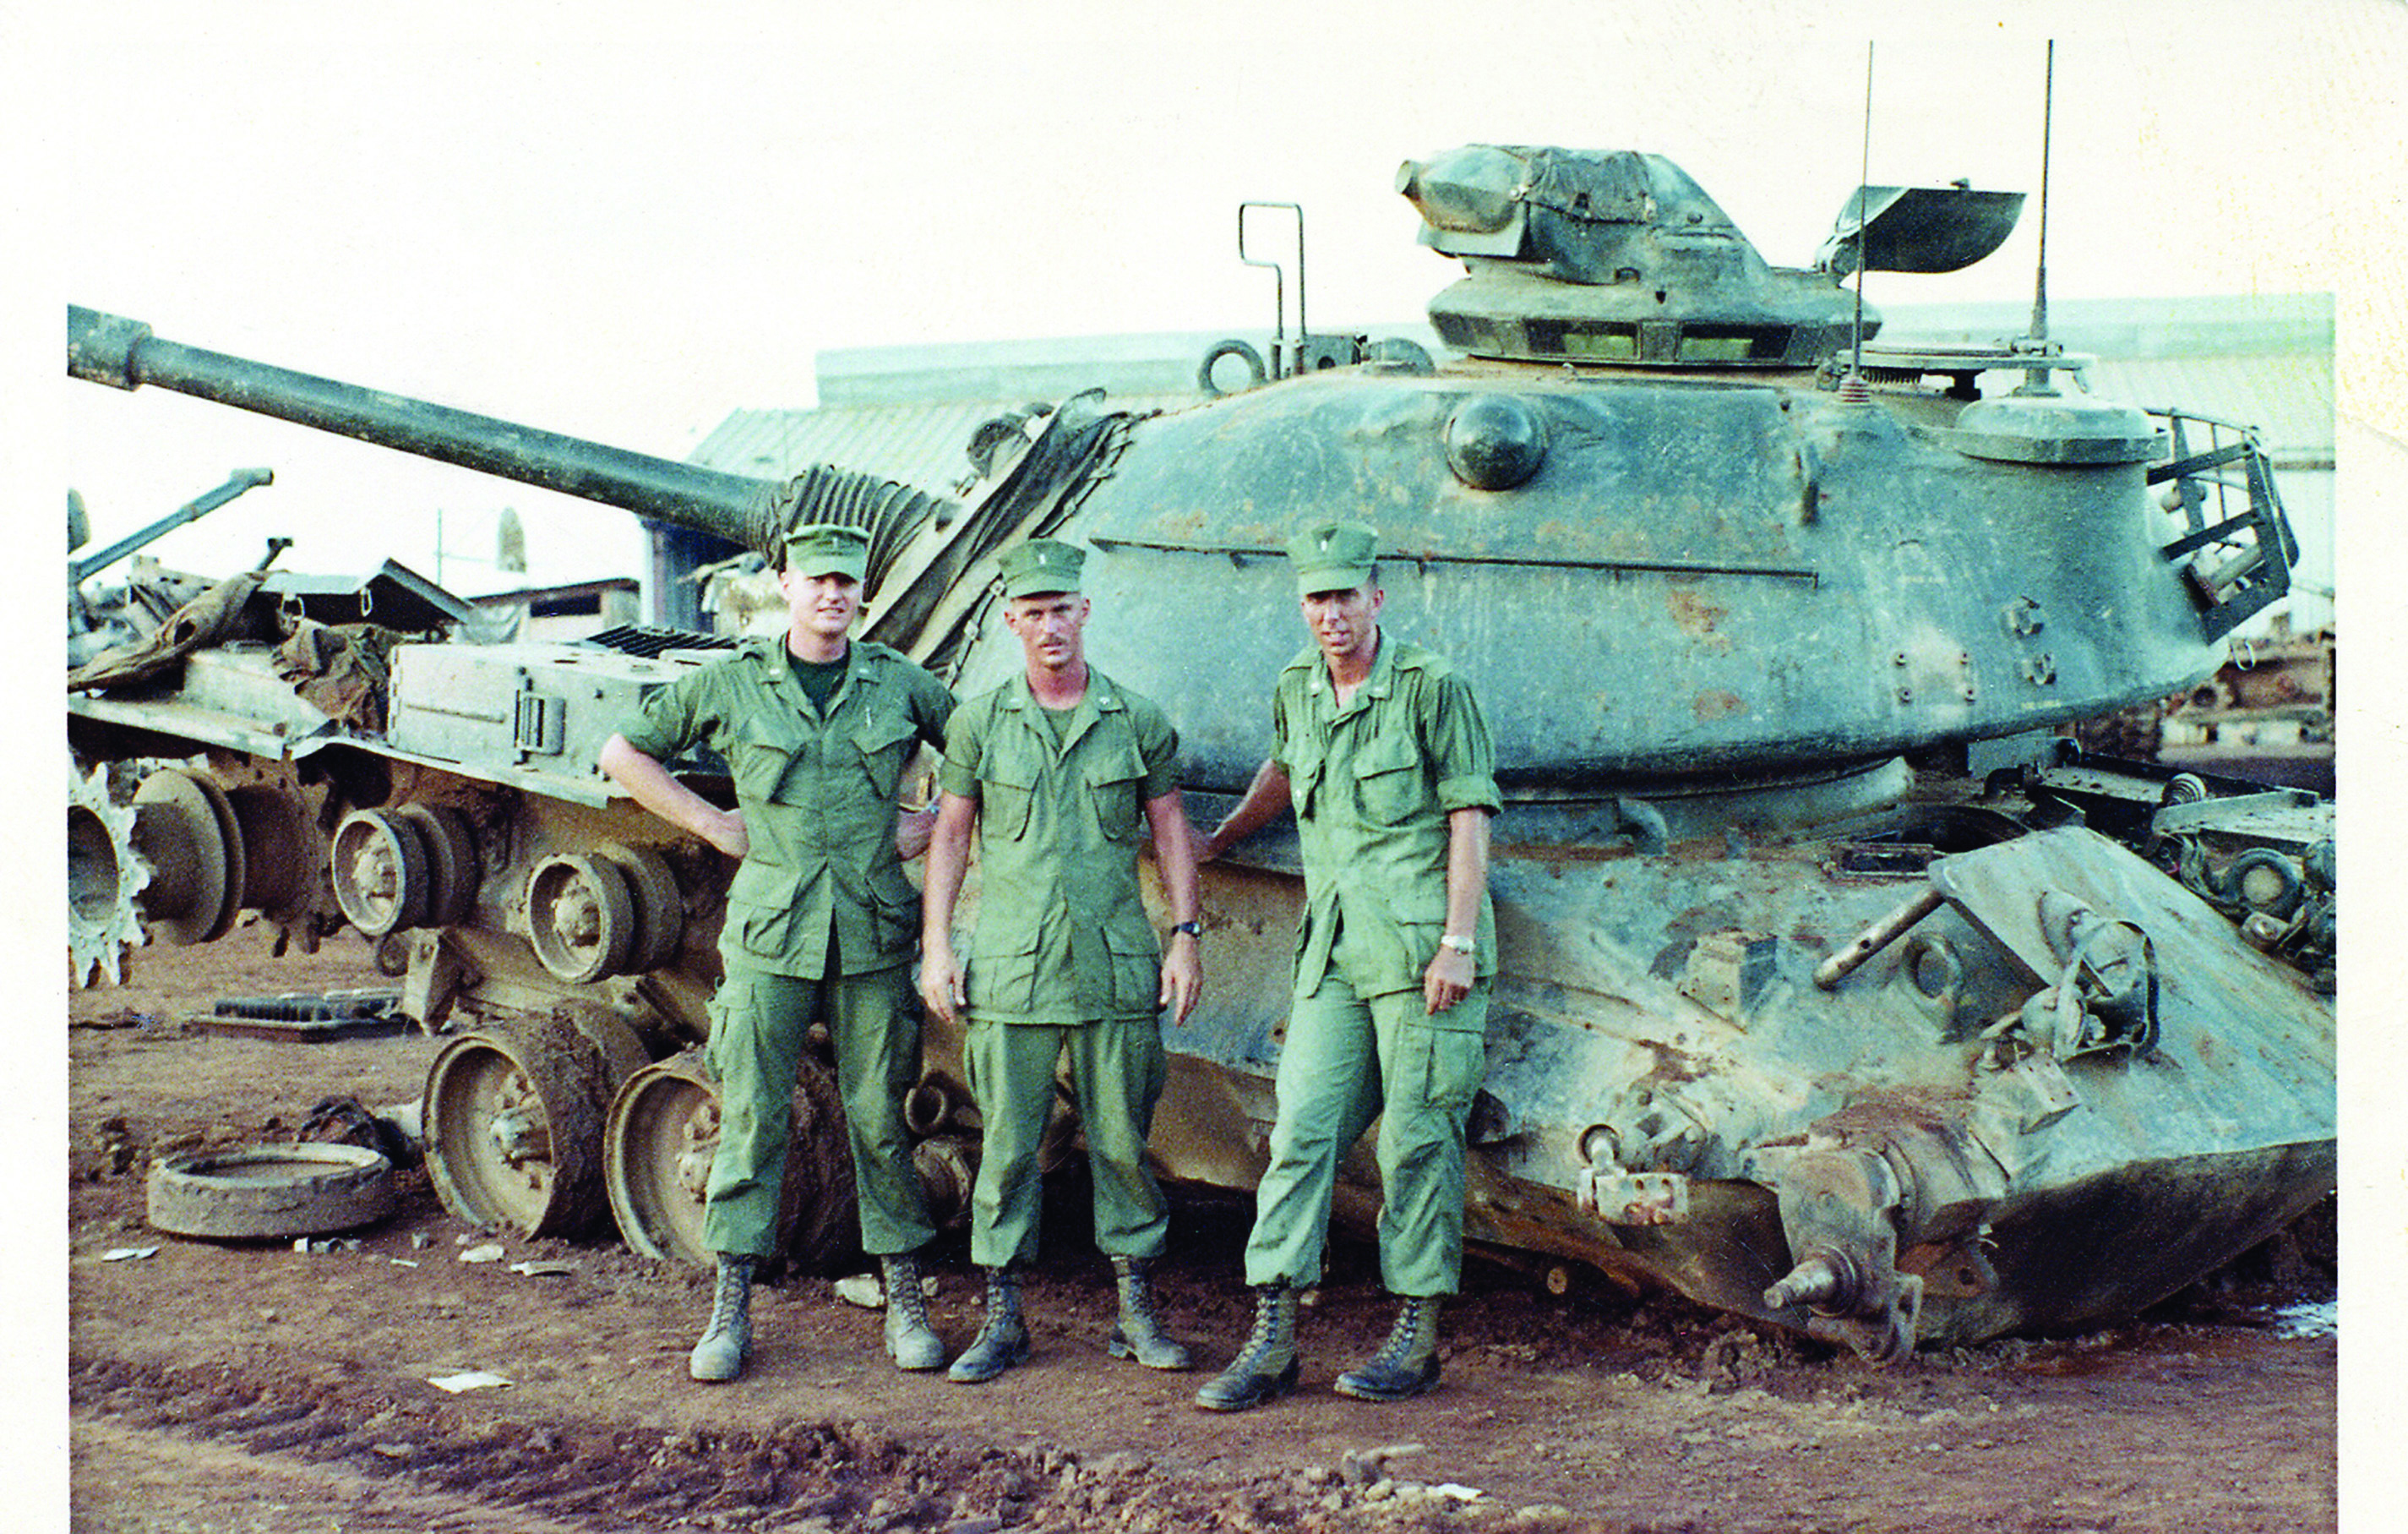 Russ Harrison MBA '79, right, with two other Marine Corps lieutenants in front of his tank after it had hit a land mine. Harrison, who was wounded twice in Vietnam, is the chair of SMC's Board of Trustees